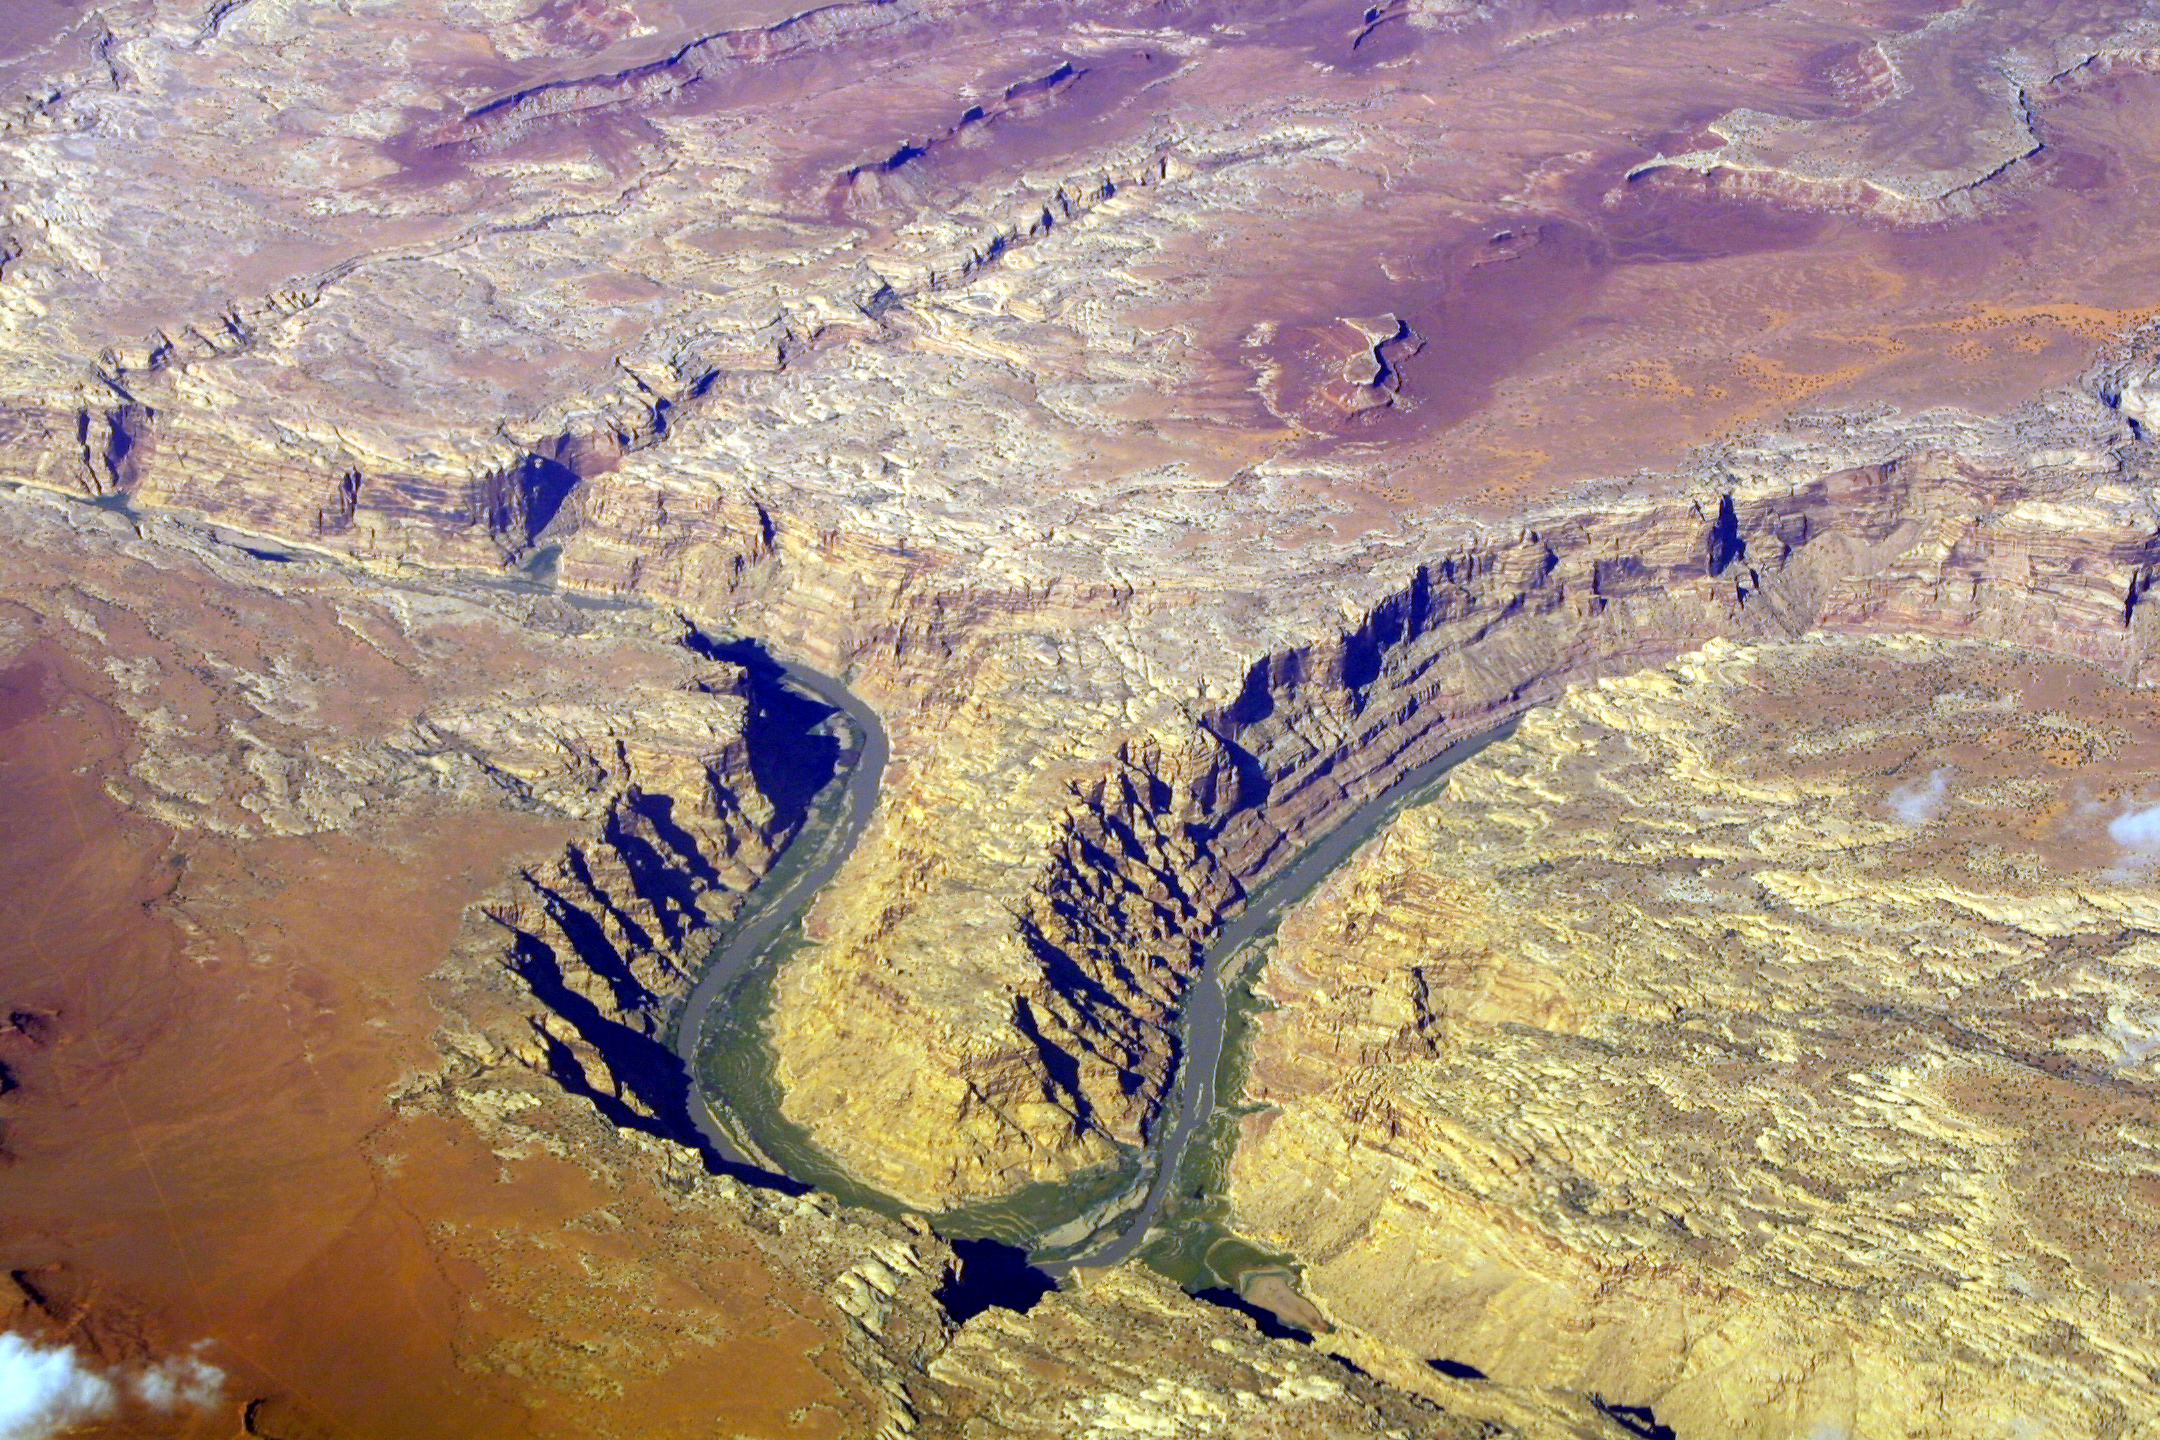 Aerial view of a canyon meandering